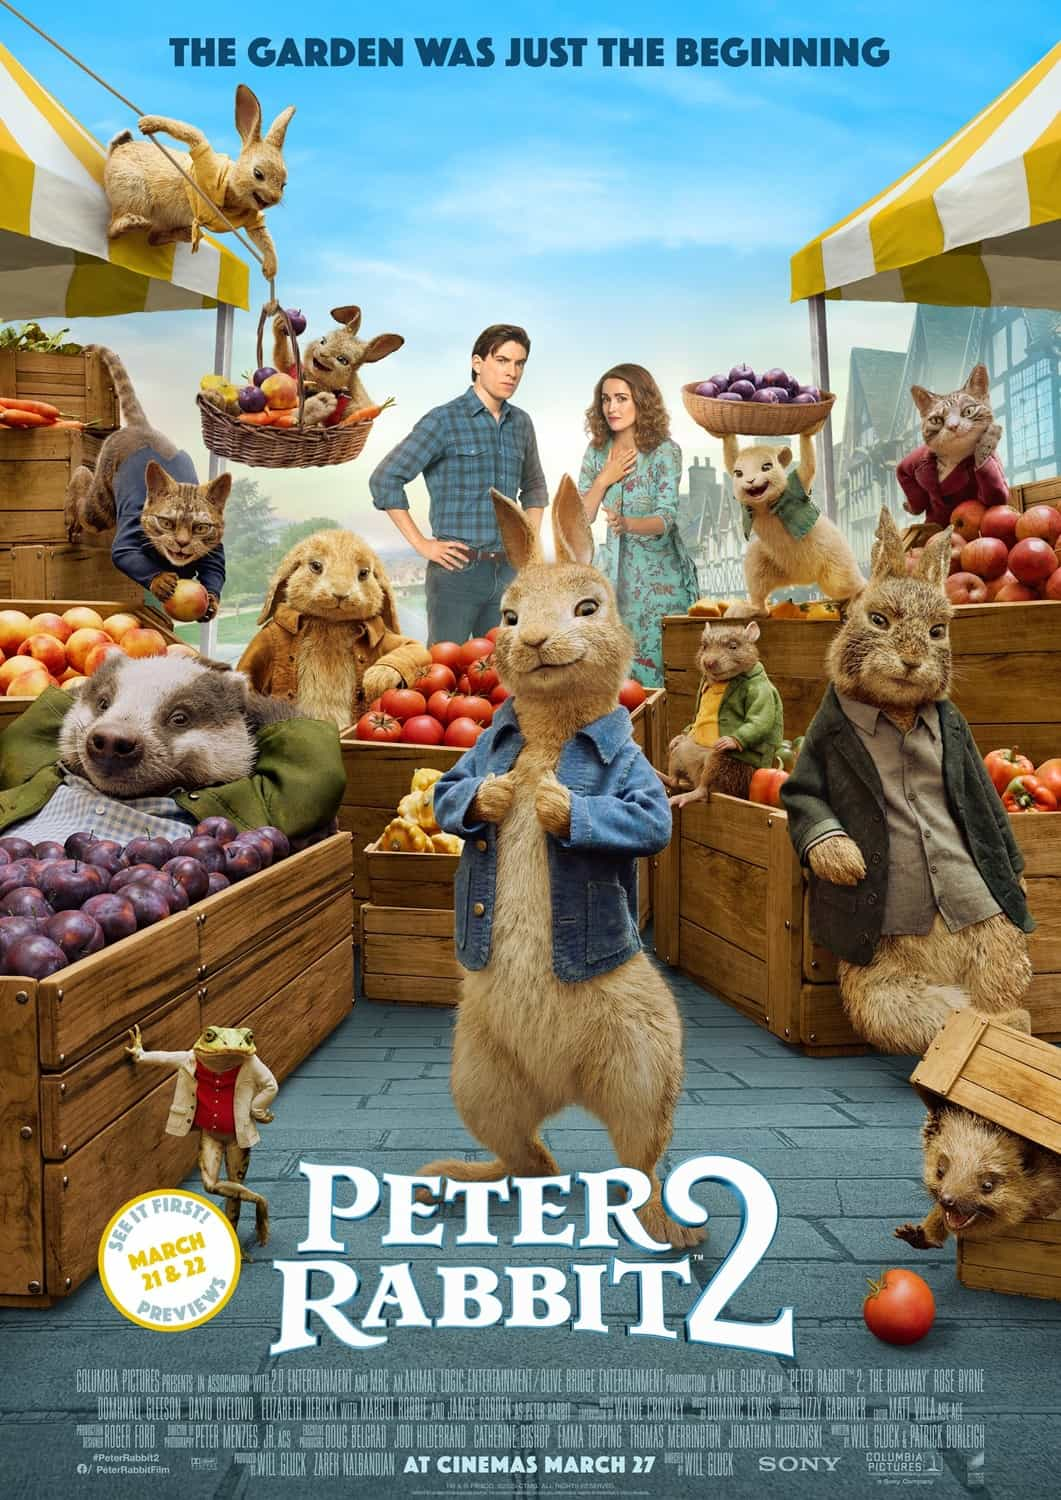 Peter Rabbit 2 is the top movie in the UK on the first day of the re-opening as cinemas doors open for the first time in 2021